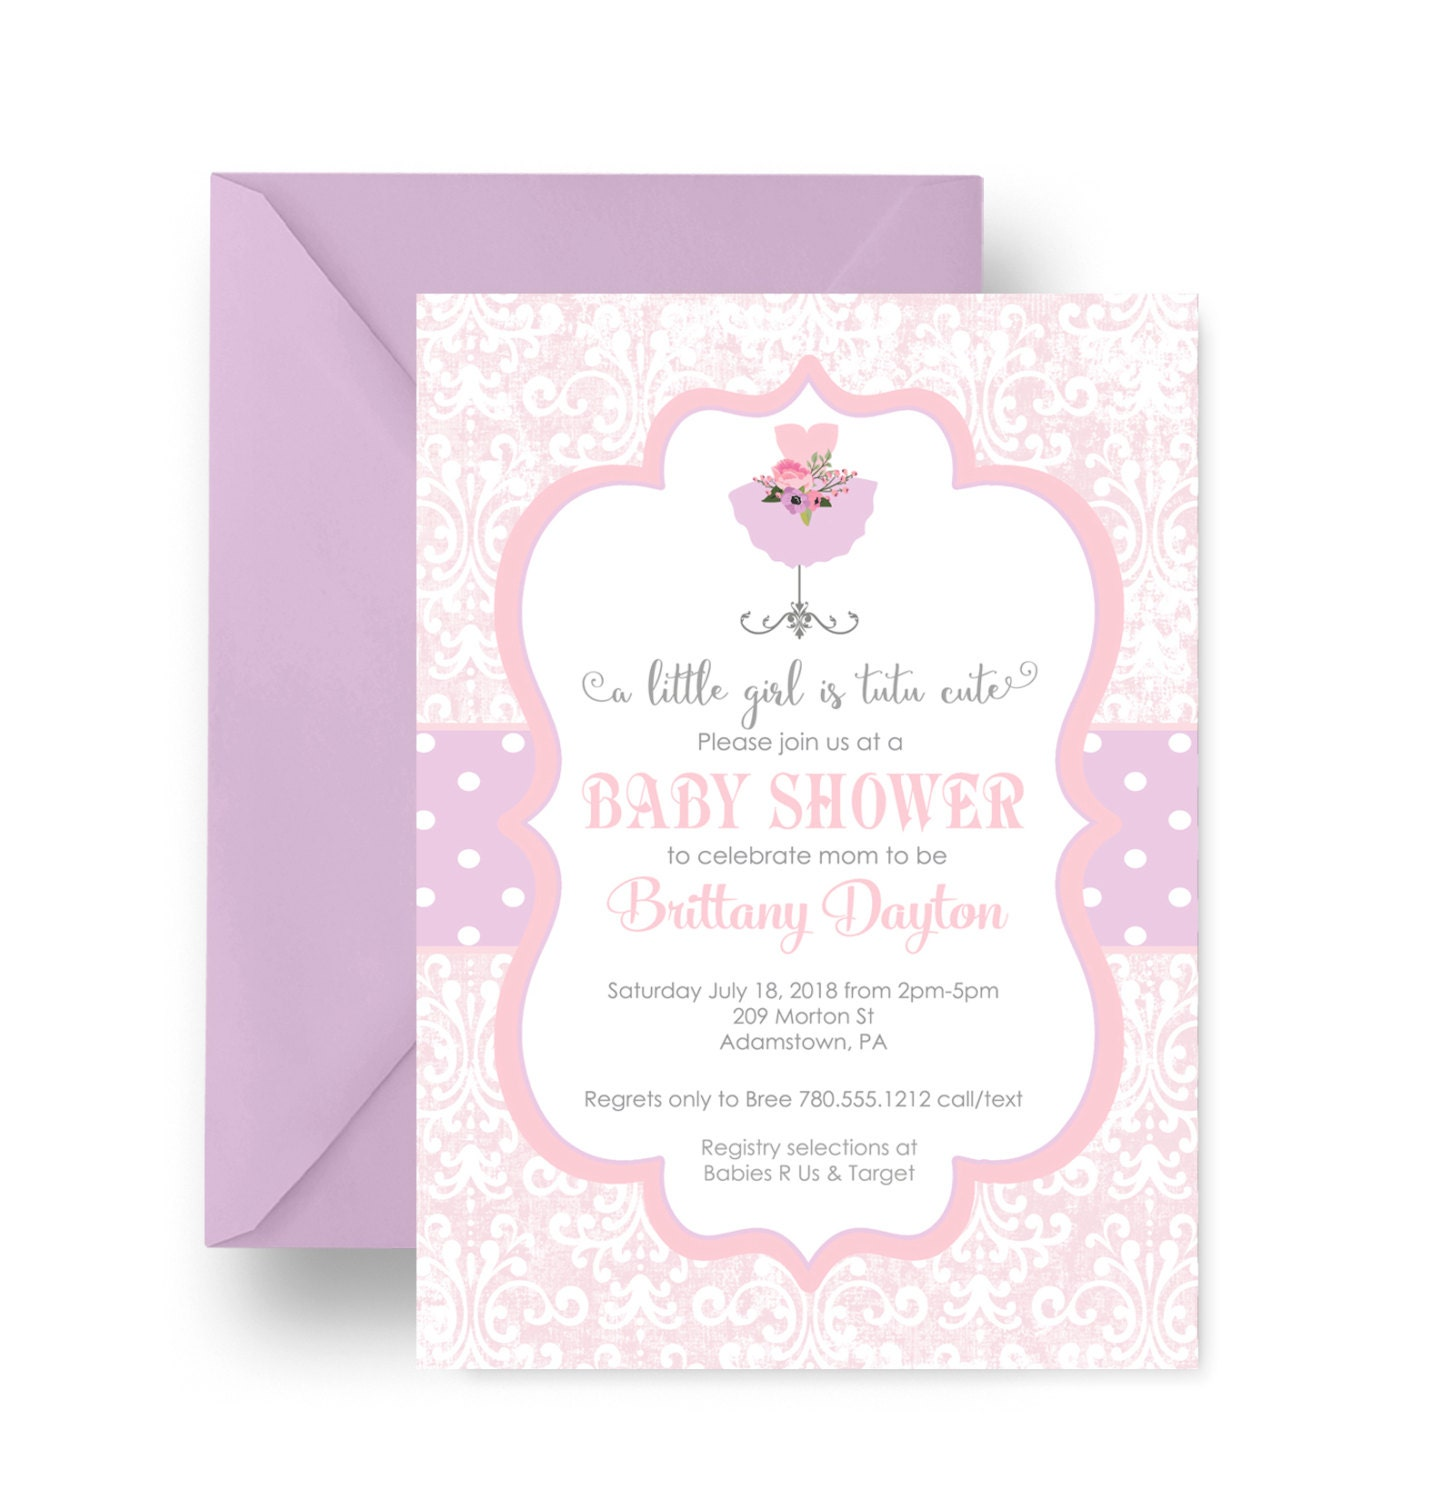 tutu girls baby shower invitation charmed by papercleverparty